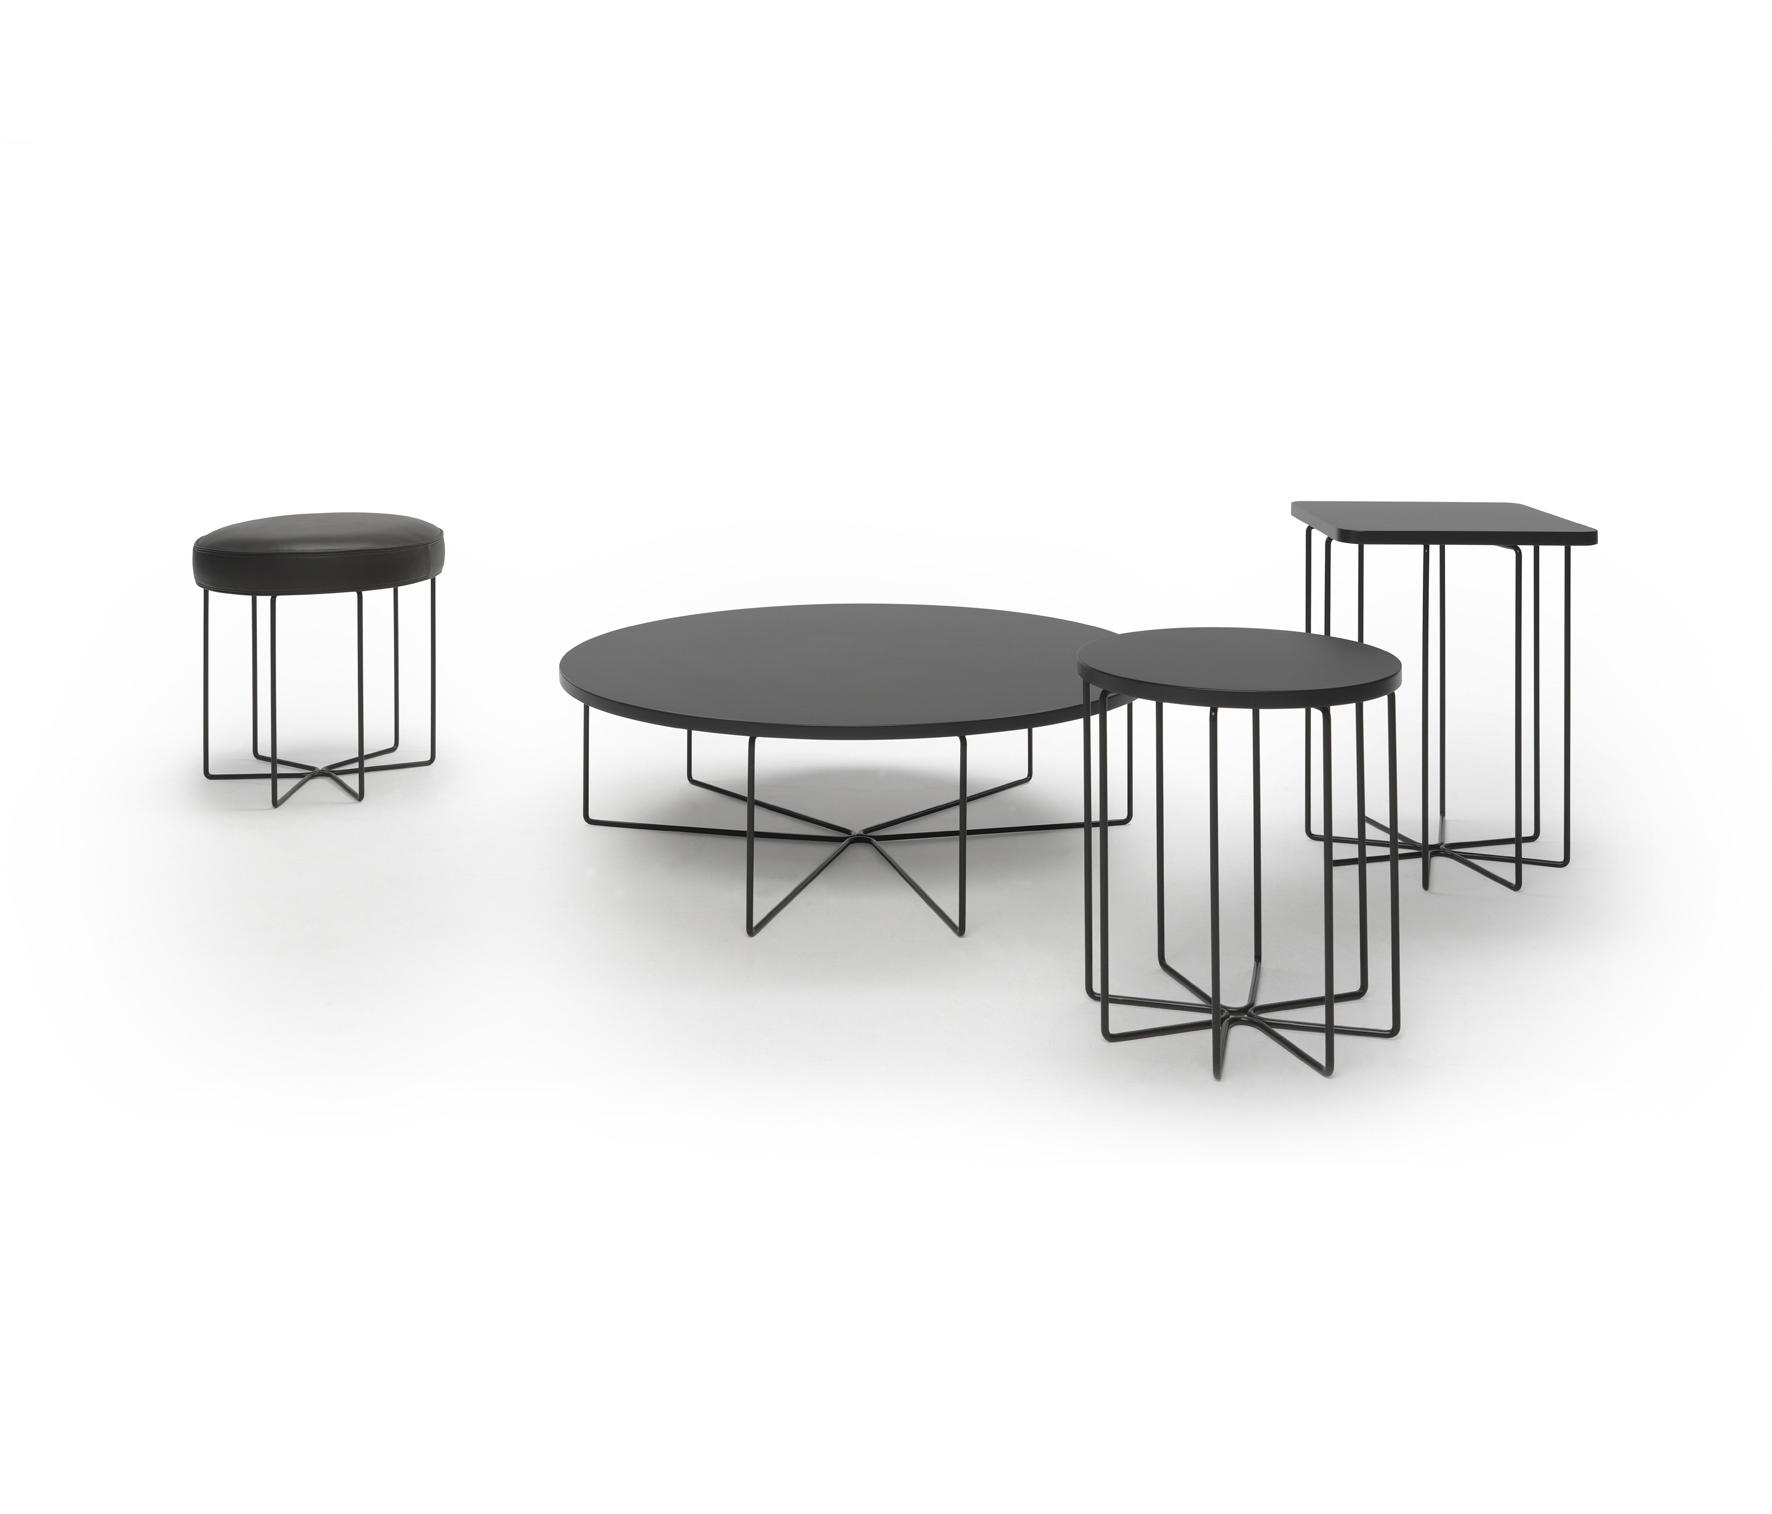 GINGER Ottomans from Loop & Co